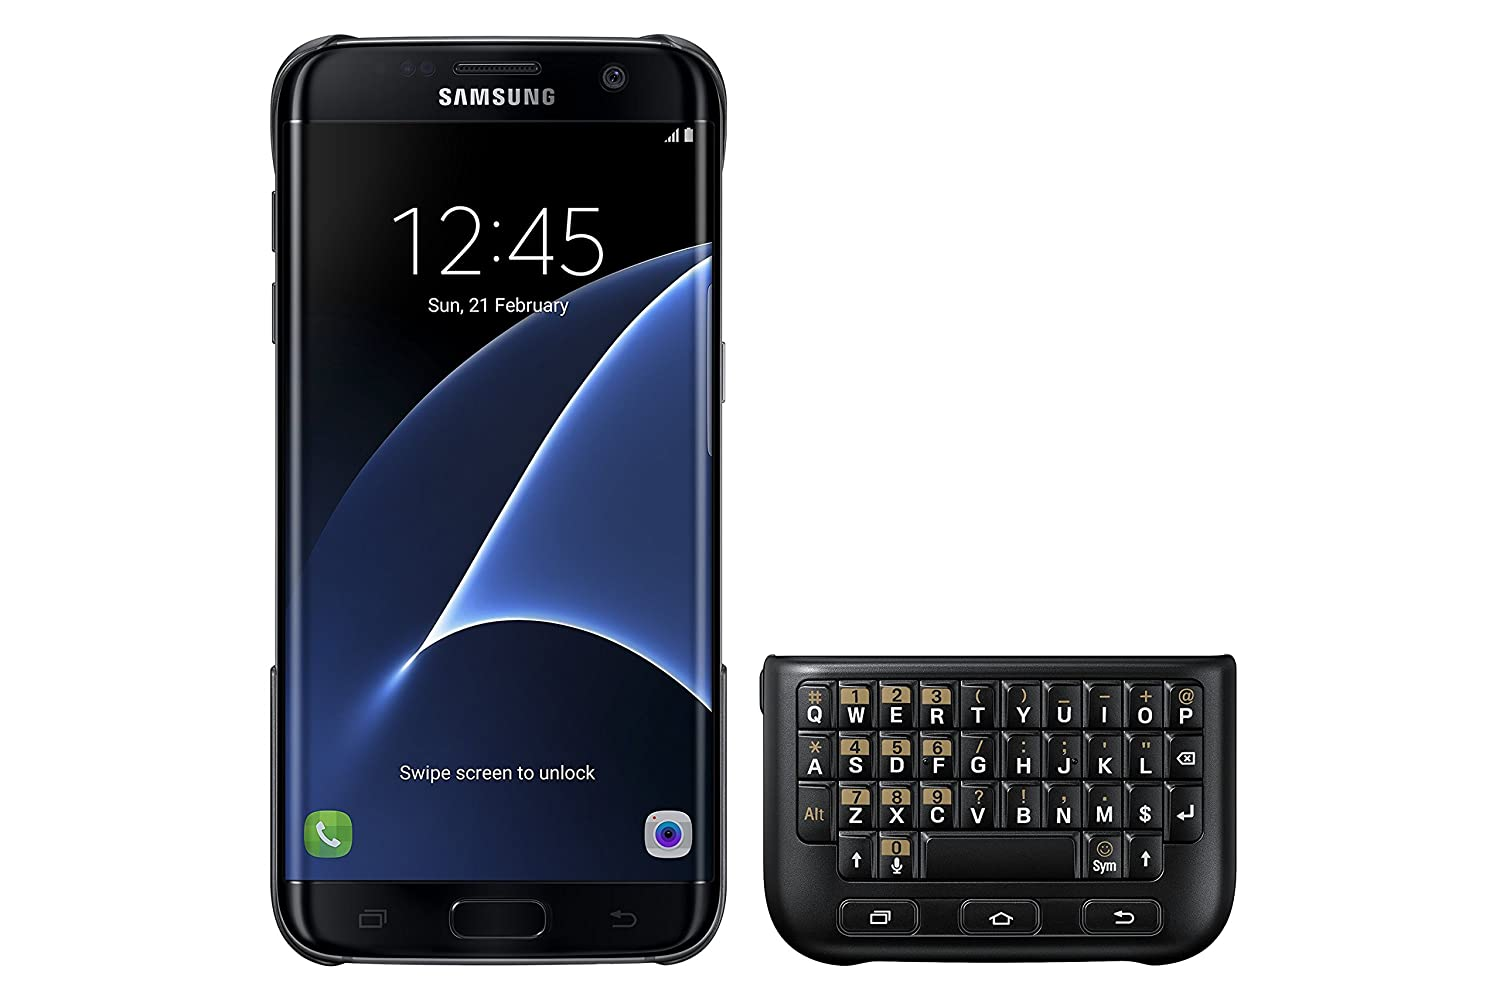 The Samsung Galaxy S7 edge Keyboard Cover